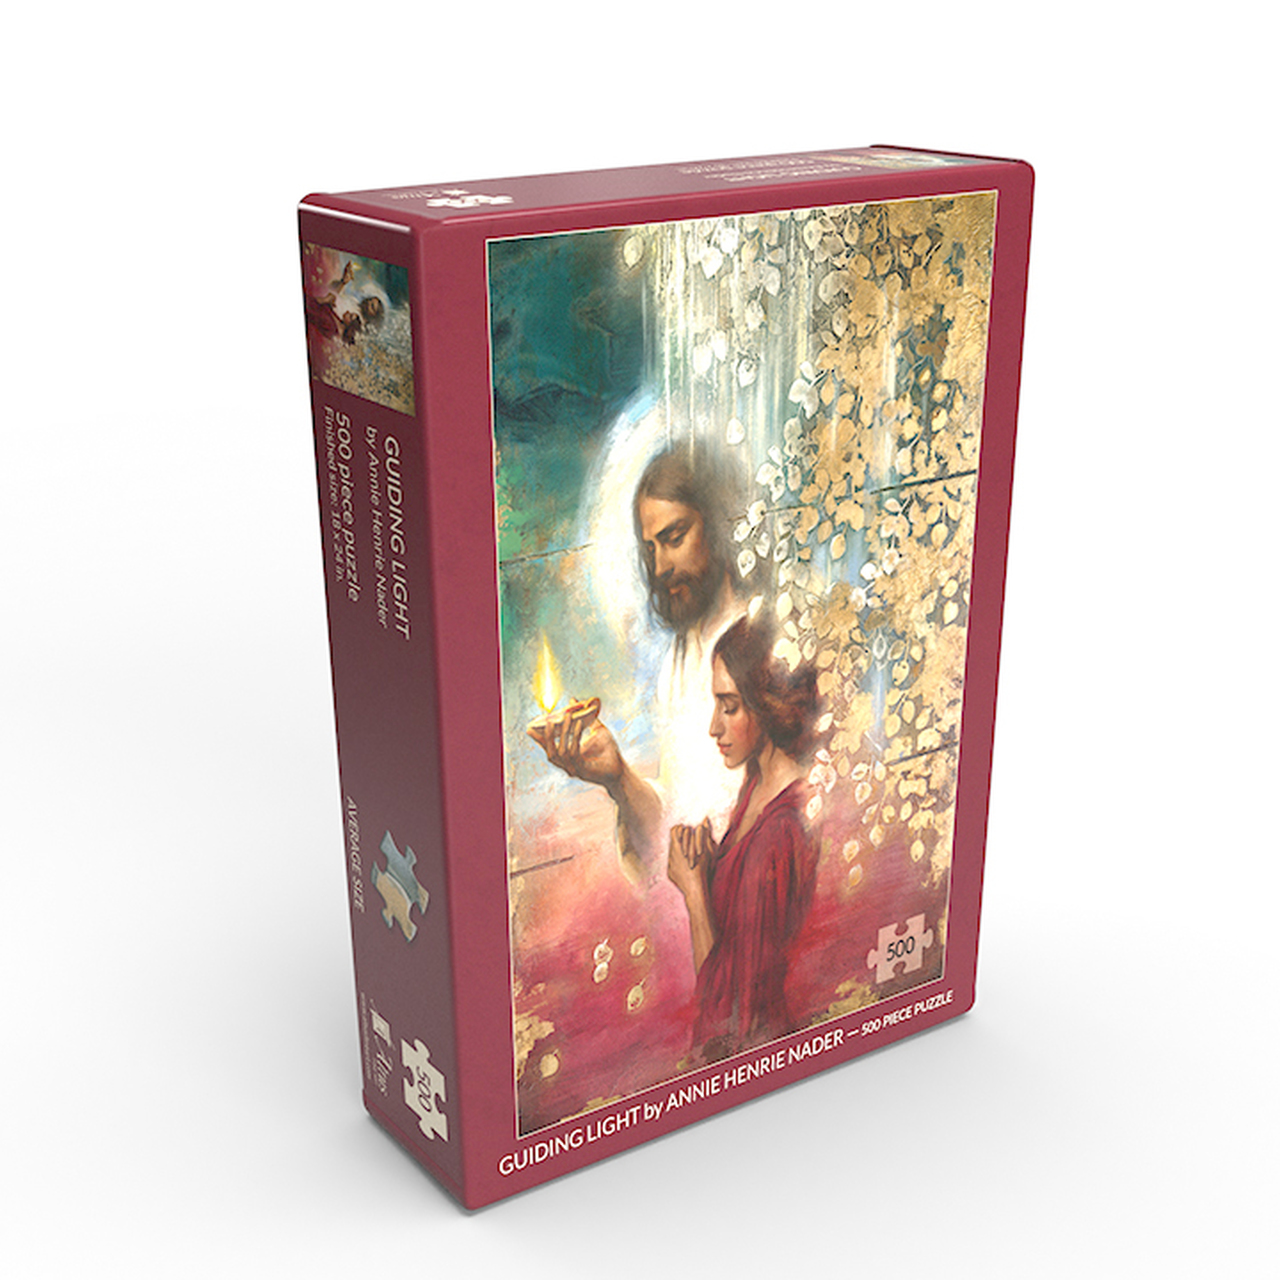 AF - Jigsaw Puzzle - Guiding Light 18x24 jigsaw puzzle 500 pieces by Annie Henrie Nader- 「導く光」(500ピース) - ジグソーパズル